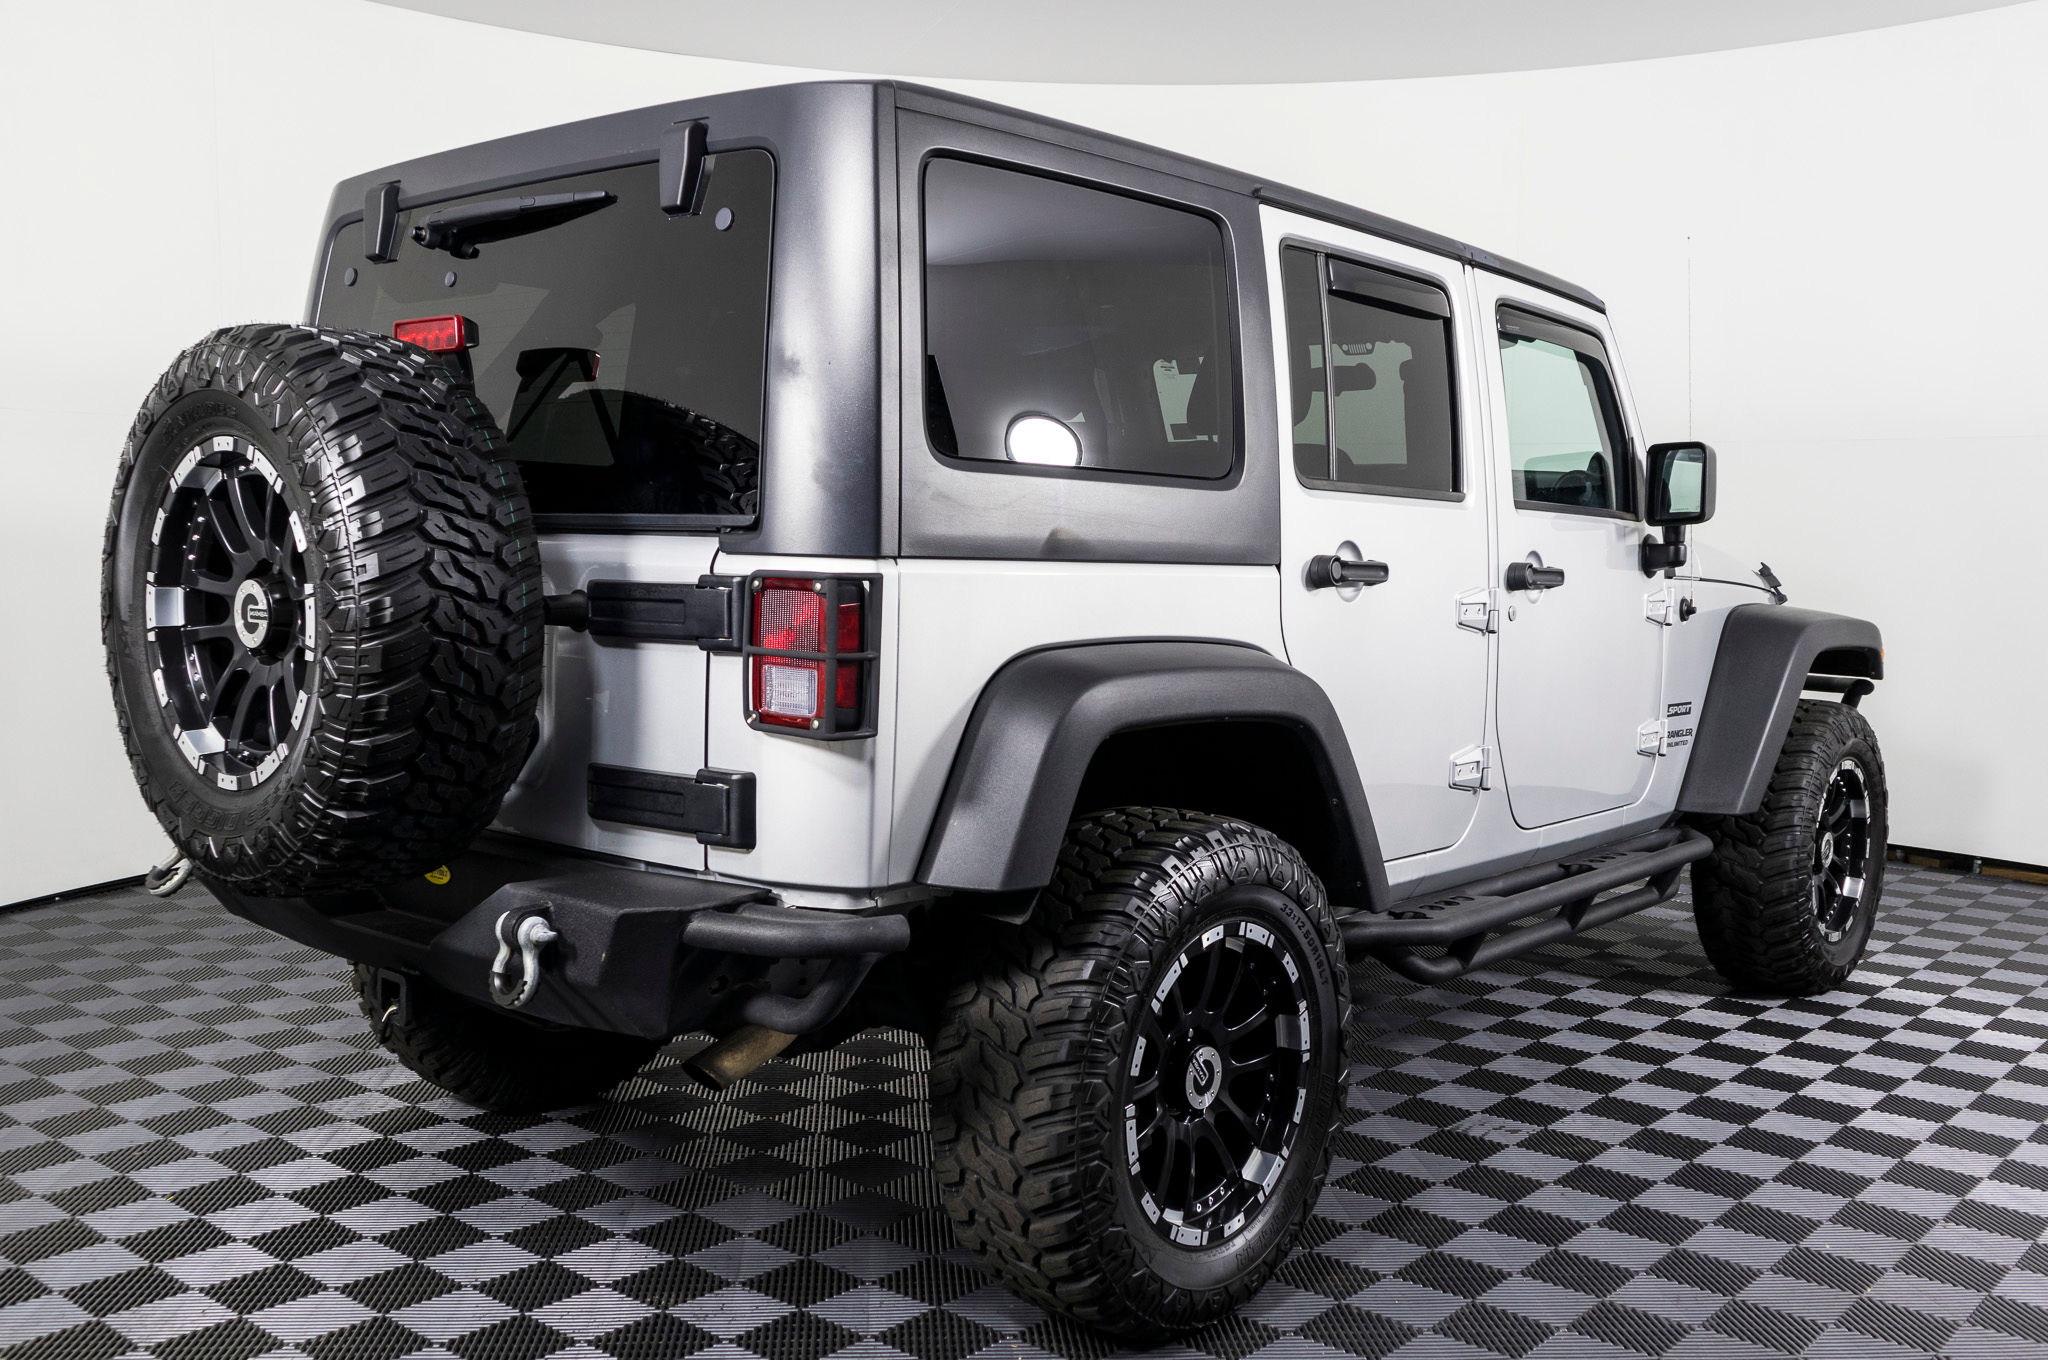 Used Lifted 2012 Jeep Wrangler Unlimited Sport 4x4 SUV For Sale